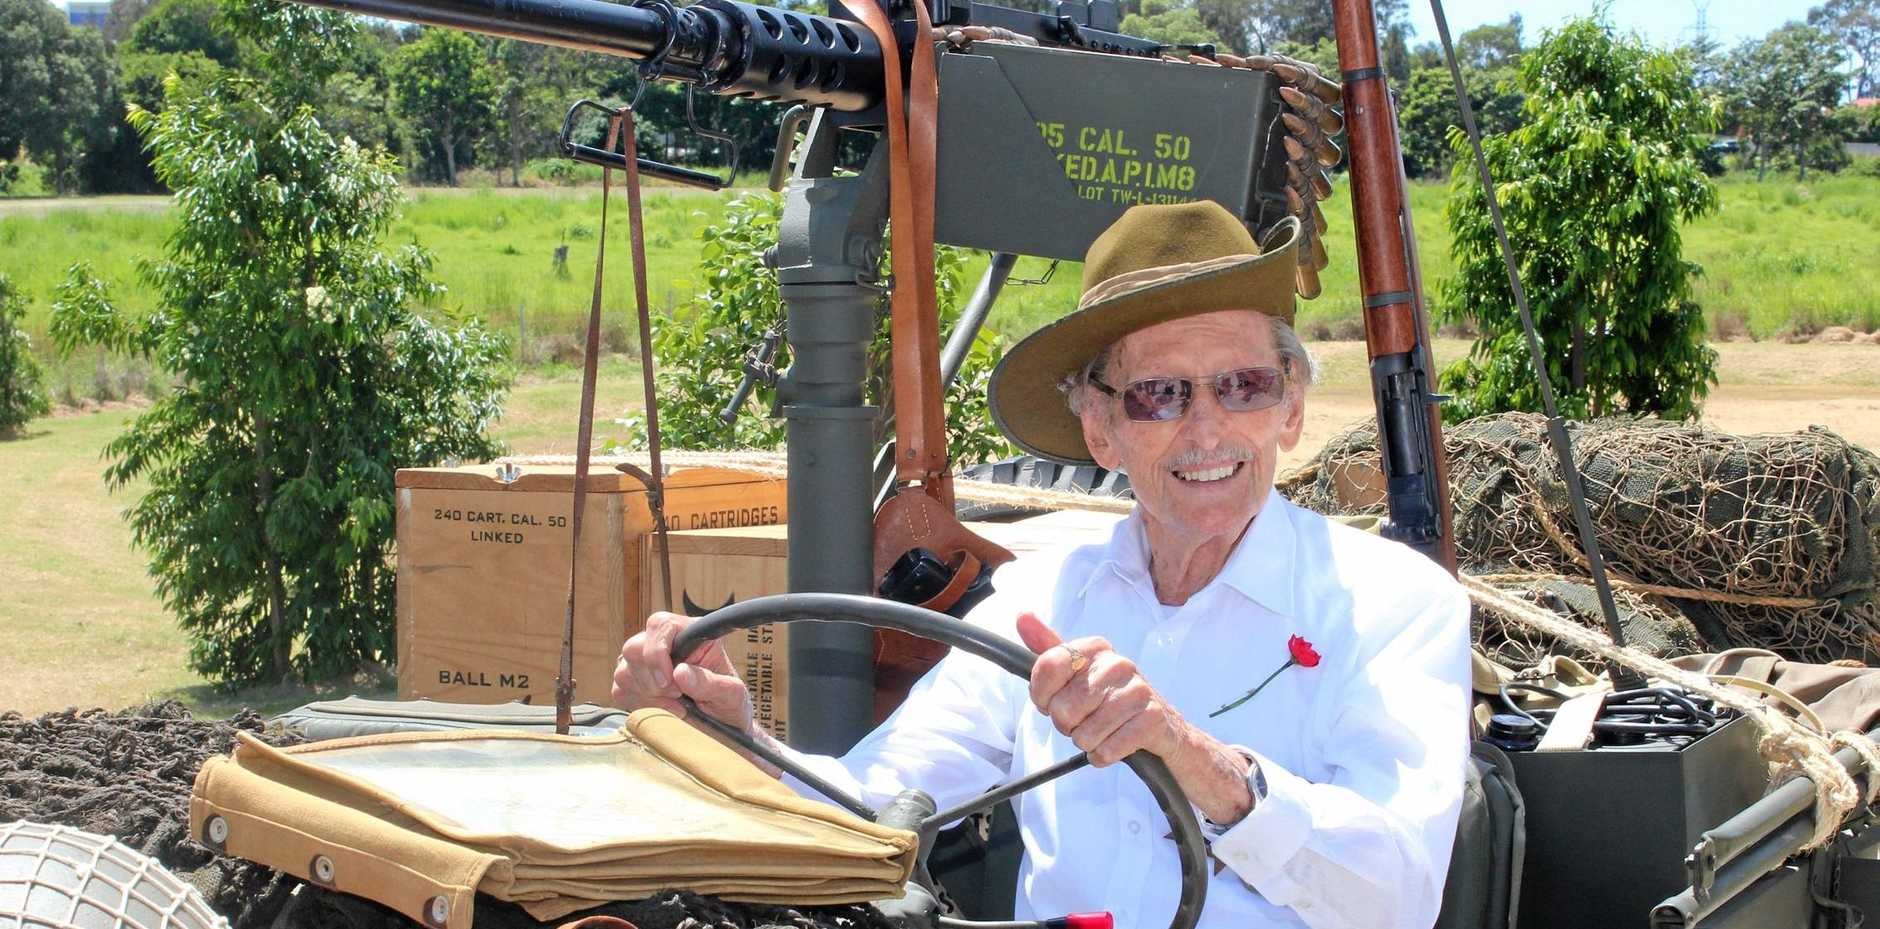 REMEMBRANCE DAY: Carinity Cedarbrook resident Gordon Jamieson, 97 in a WWII jeep, is one of Queensland's last surviving POW's and Thai-Burma railway workers. Gordon honoured his fallen army mates on November 11.